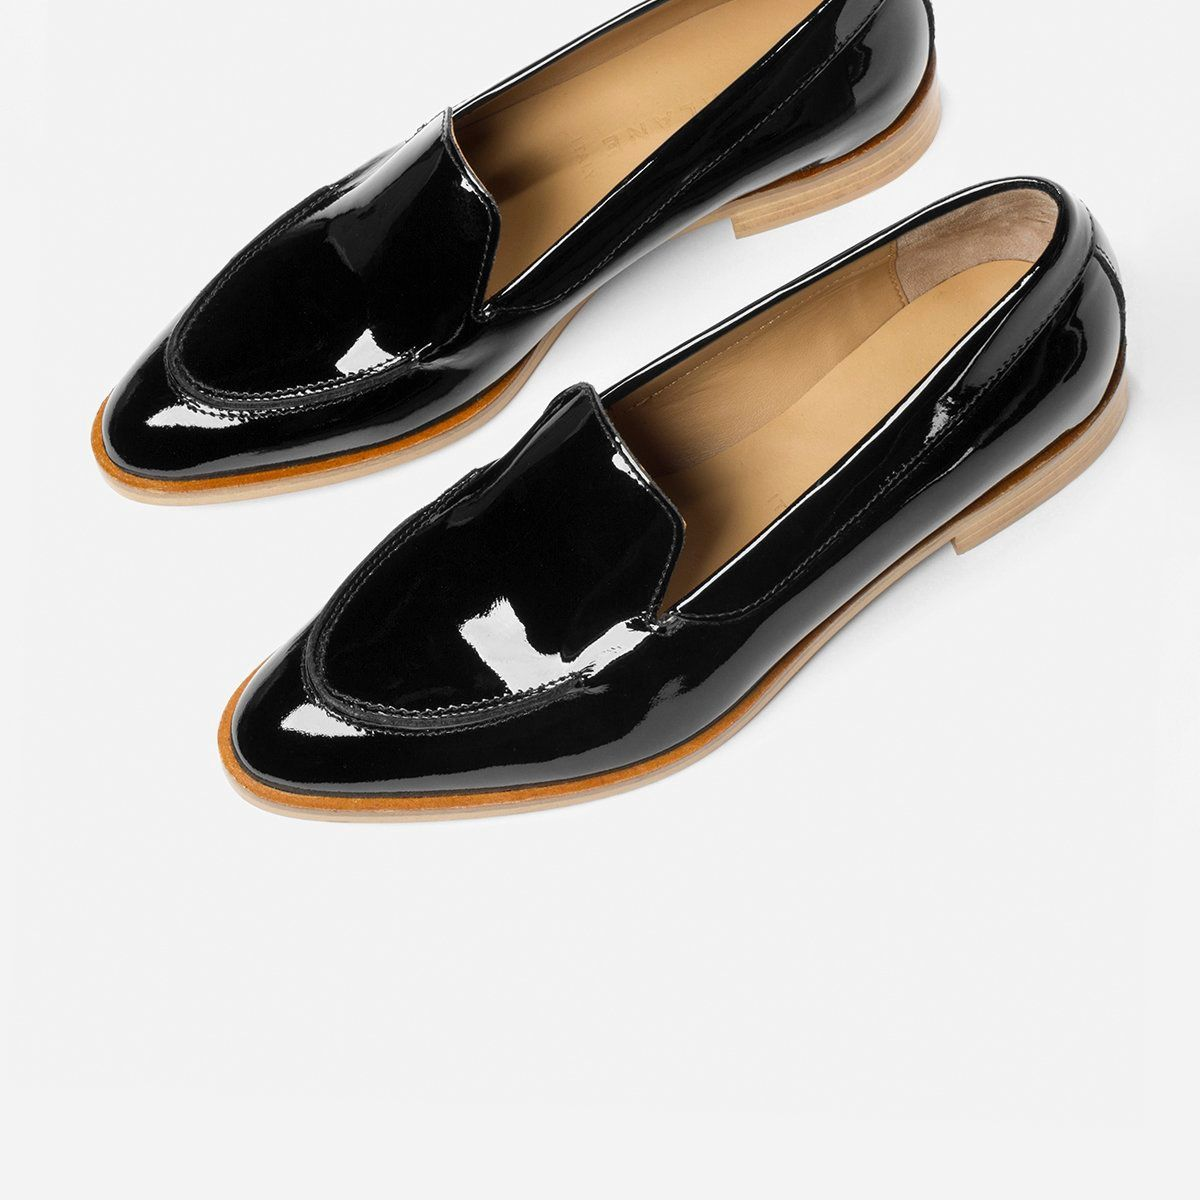 Everlane Modern Loafer, Black Patent